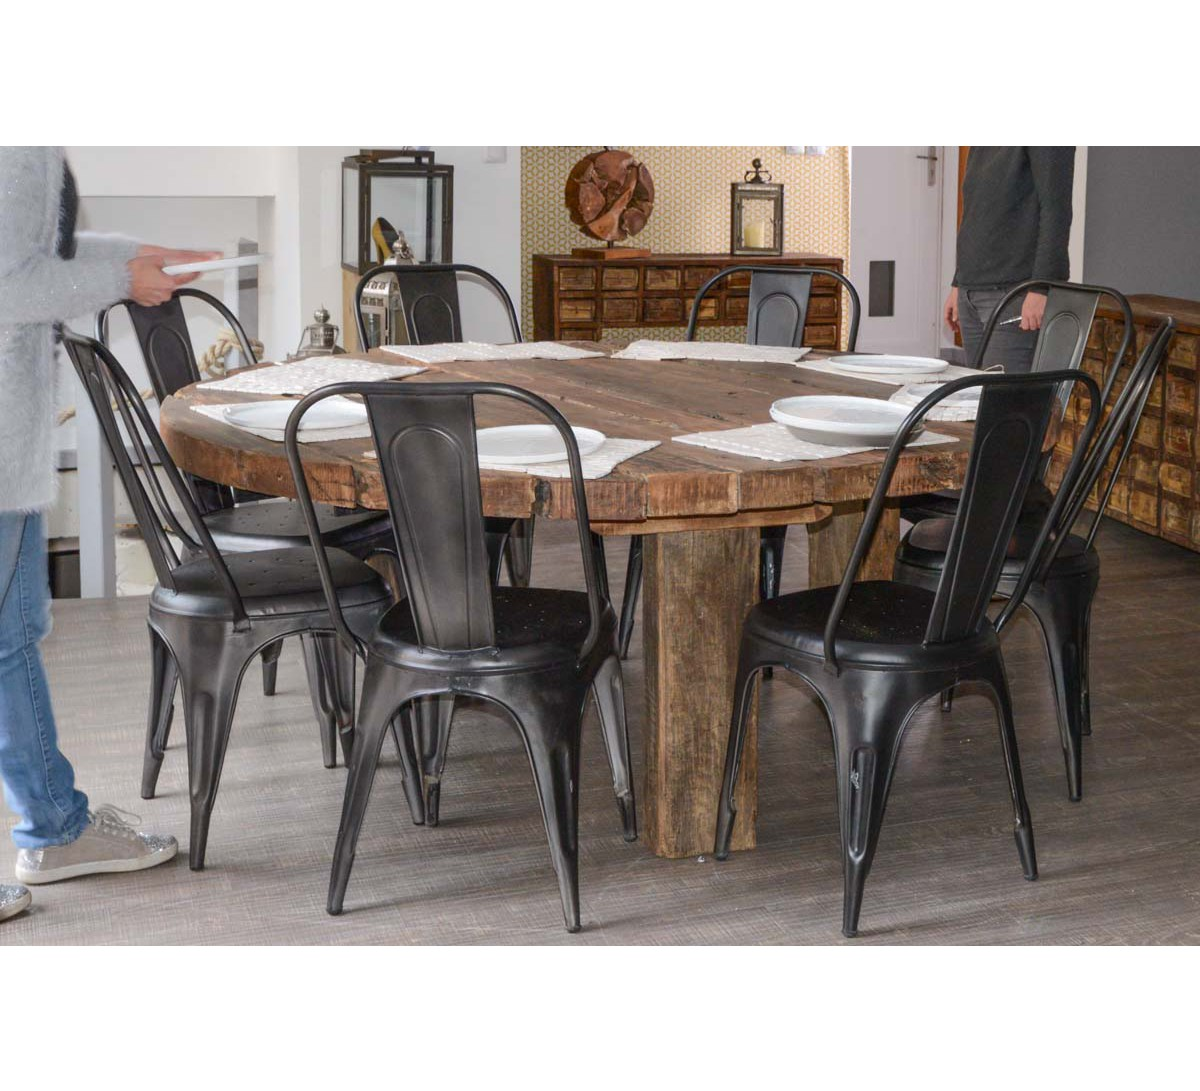 Grande Table ronde en bois recycl 180cm de diamtre Collection Npalaise  7443